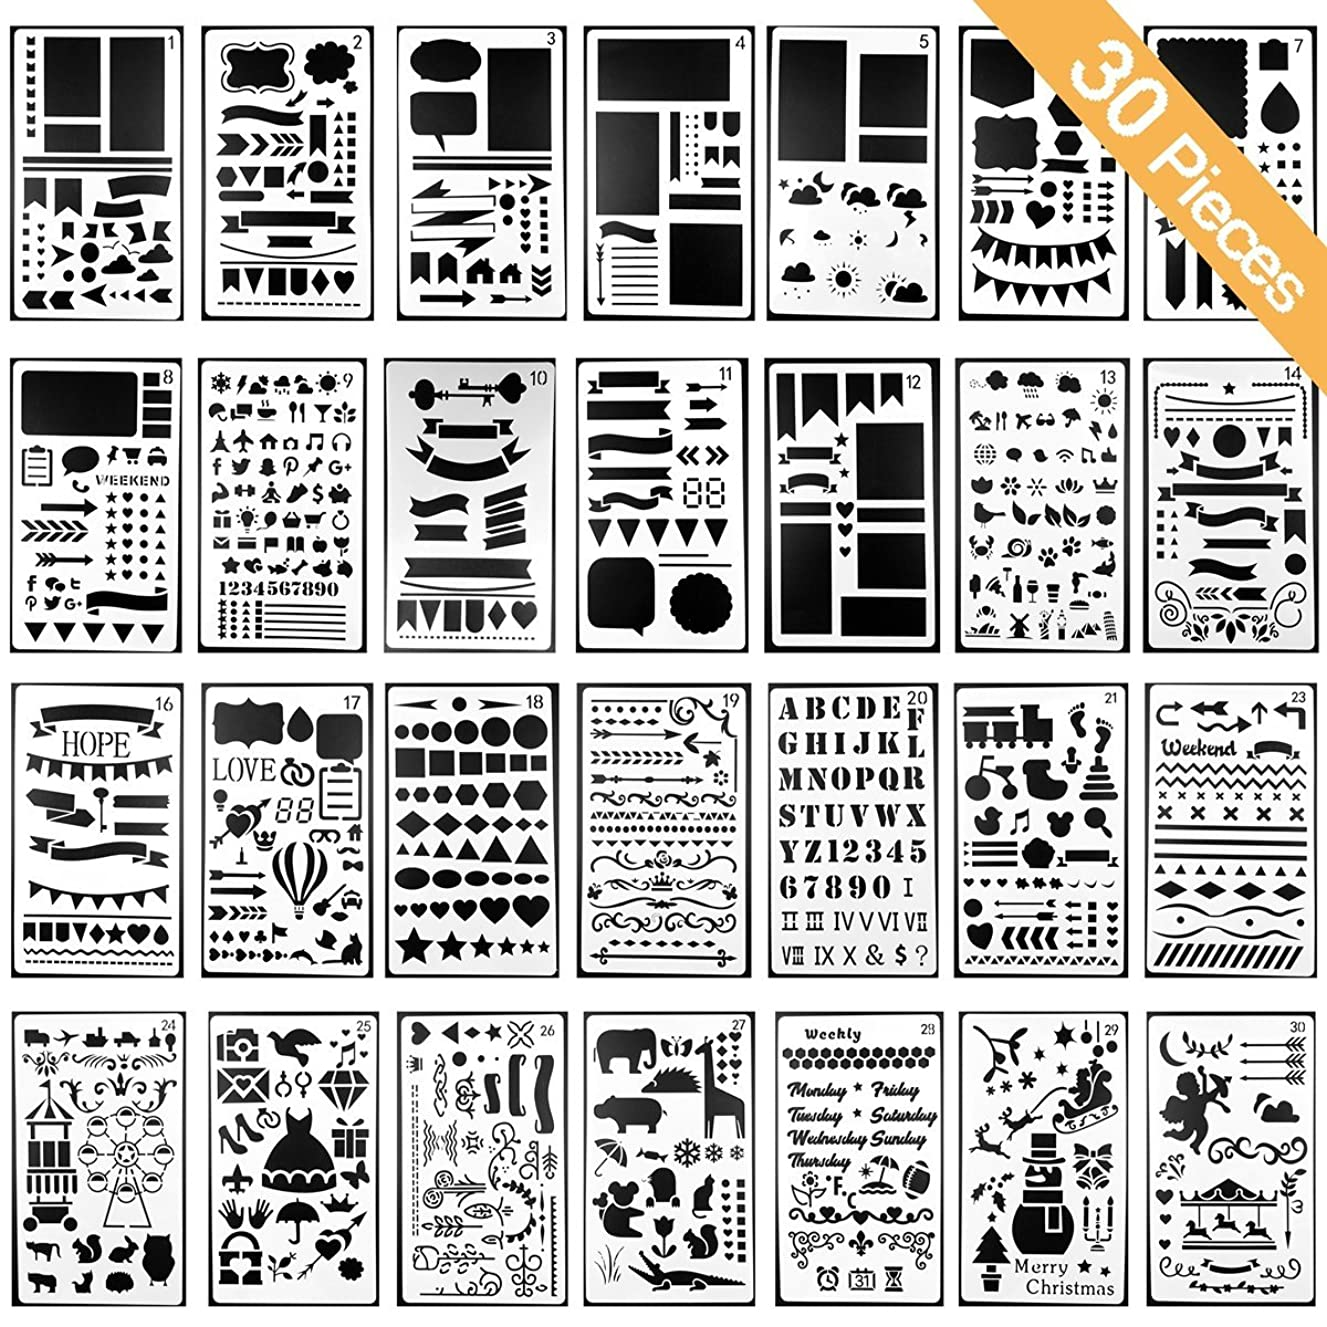 Stencils Template for DIY Scrapbooking Bullet Journaling Stencil Letters Notebook Diary Scrapbook Drawing Stamp Album Decor Embossing Paper Card School Stationery Supplies Hollow Out 30pcs 4x7inch